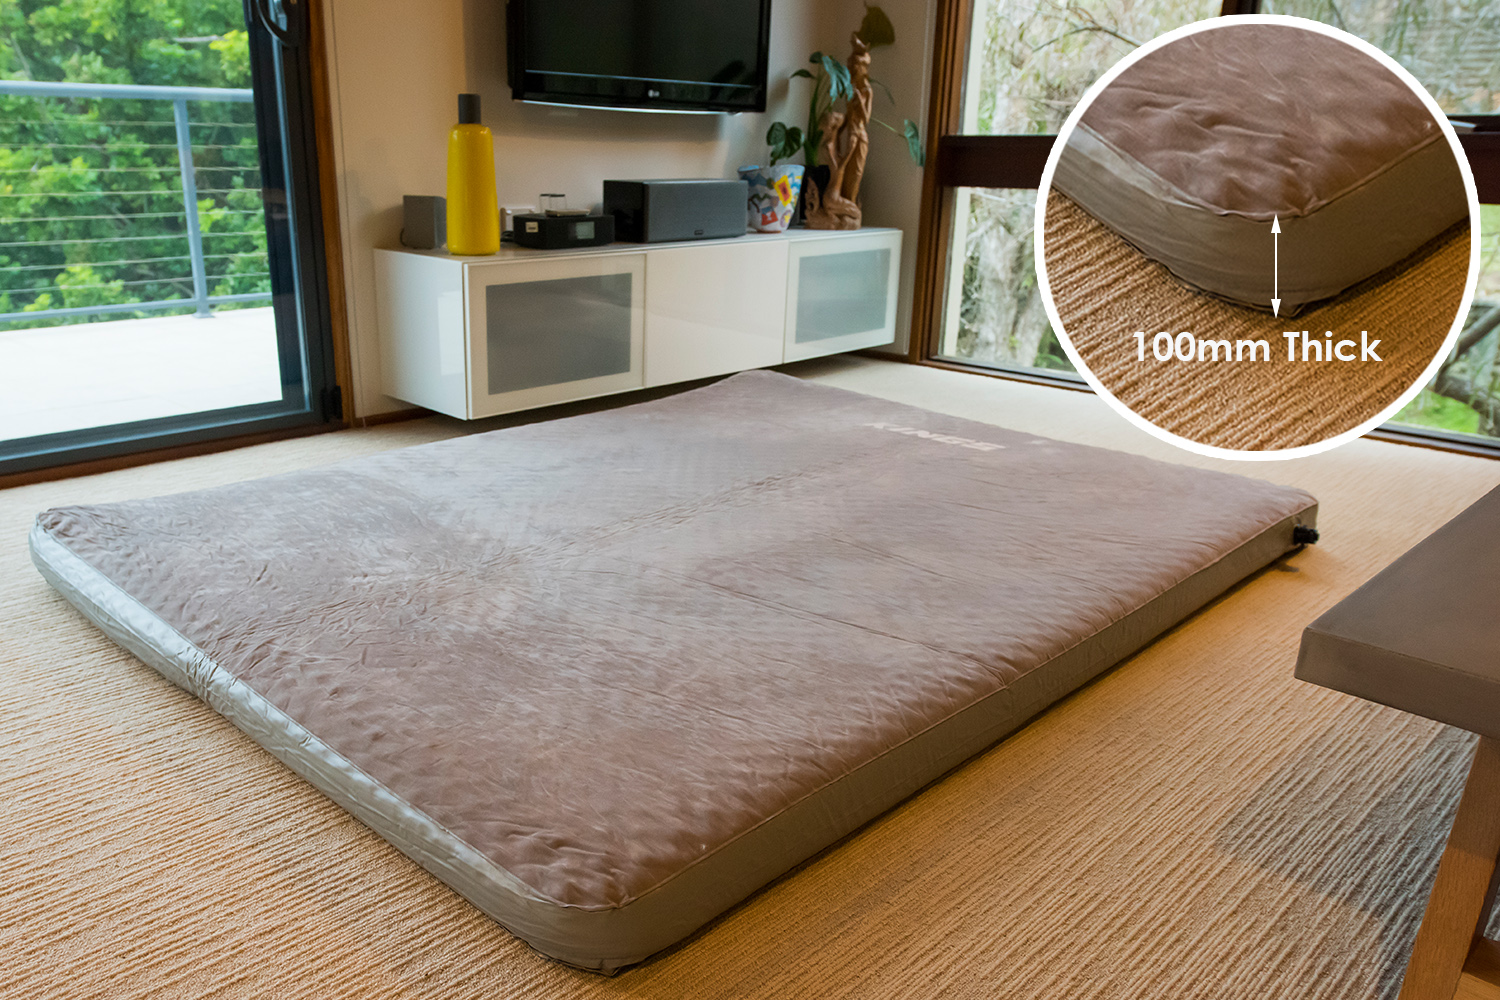 Kings Queen-Sized Self Inflating Foam Mattress   100mm Thick   Fits Big Daddy swags & more